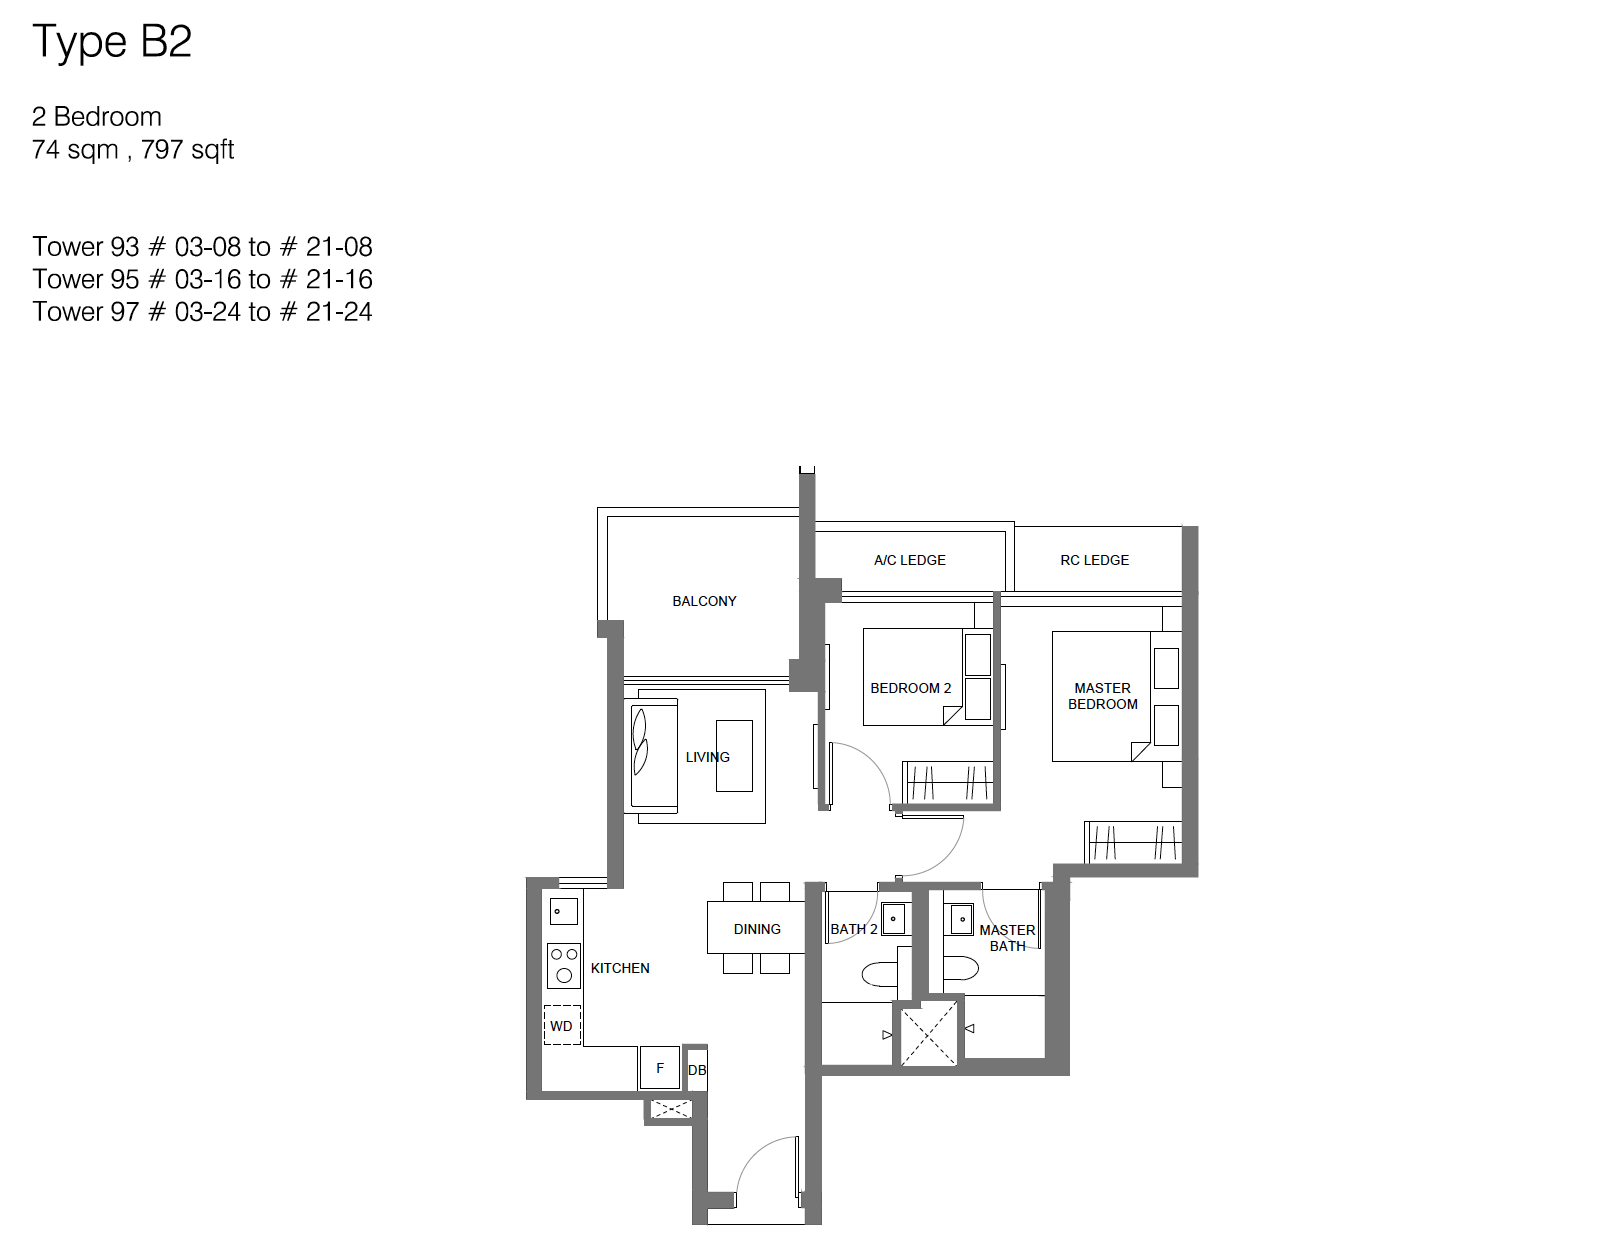 Principal Garden floor plan - 2 bedroom (type B2)